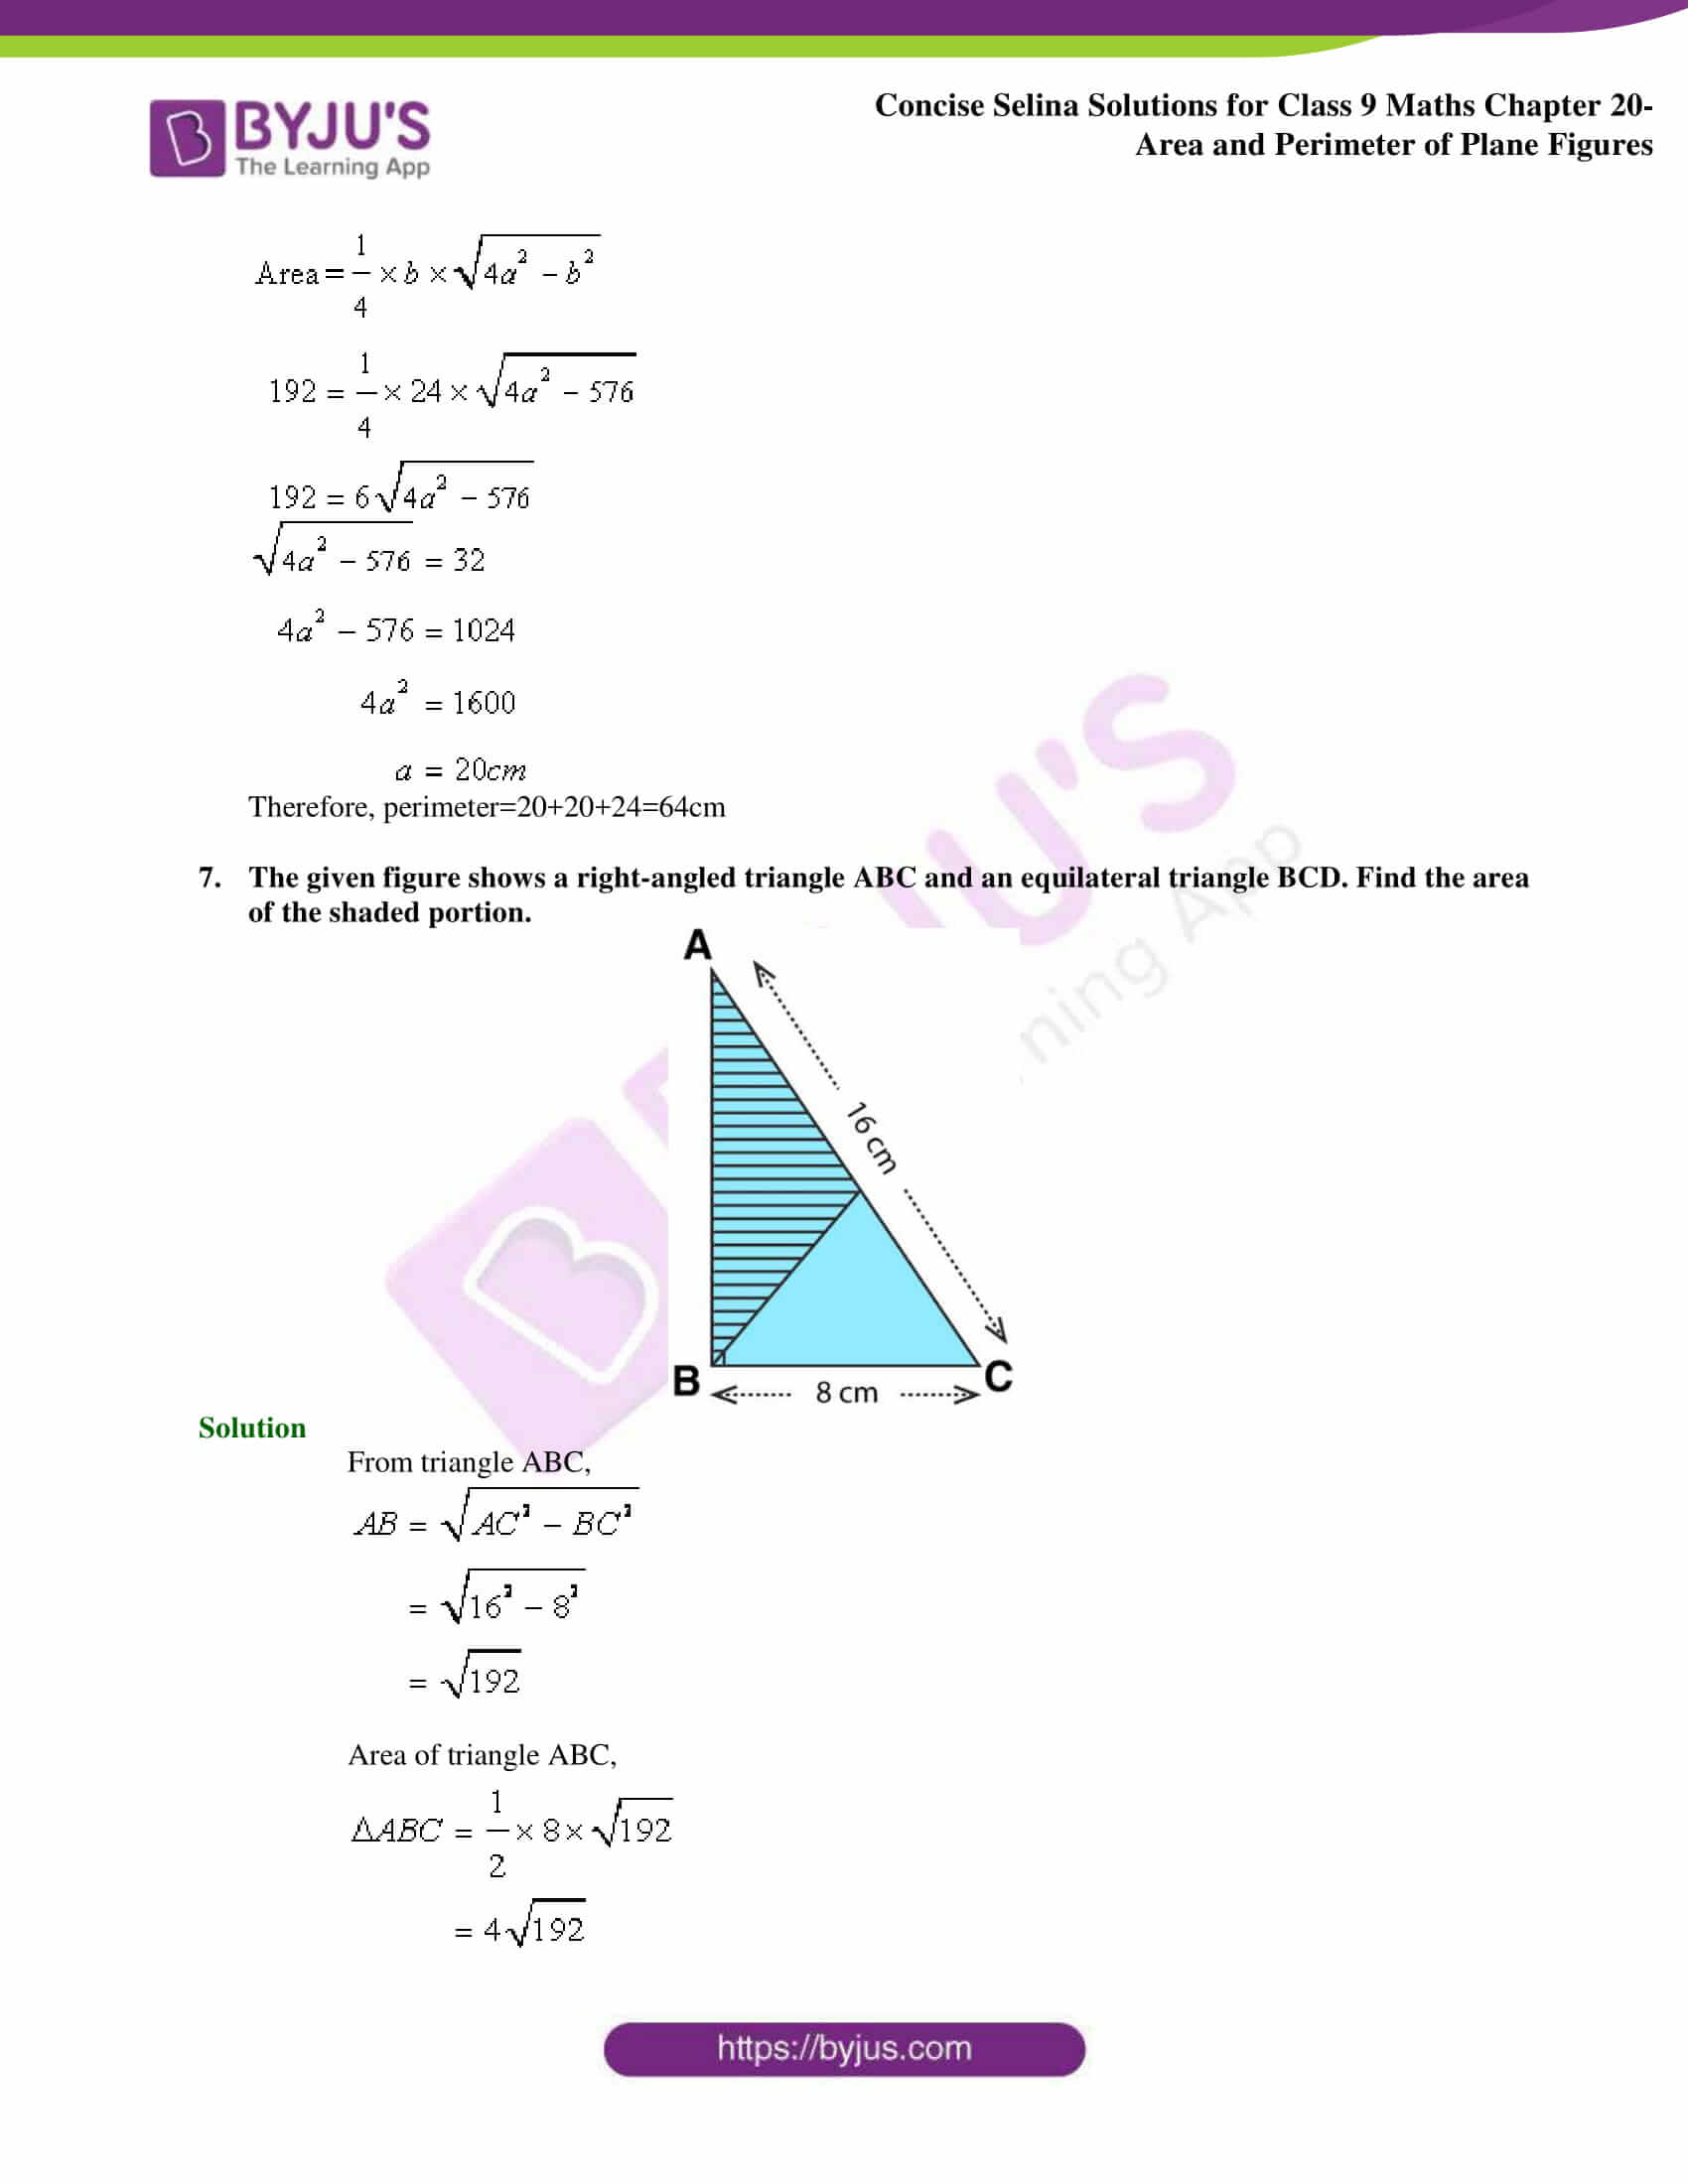 Concise Selina Solutions Class 9 Maths Chapter 20 Area and Perimeter of Plane part 04